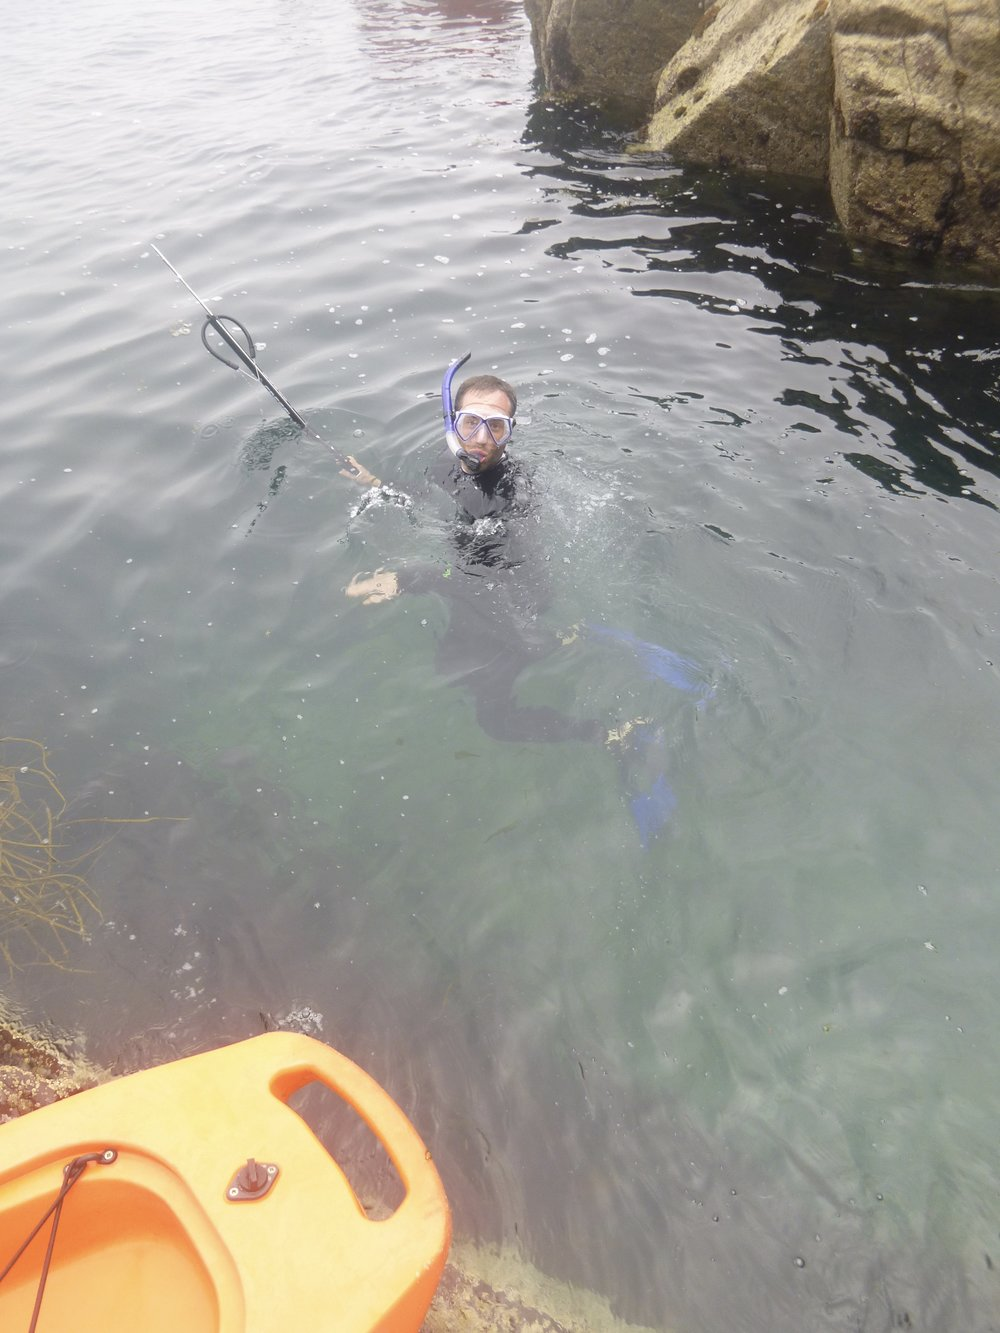 First attempt at Spear Fishing